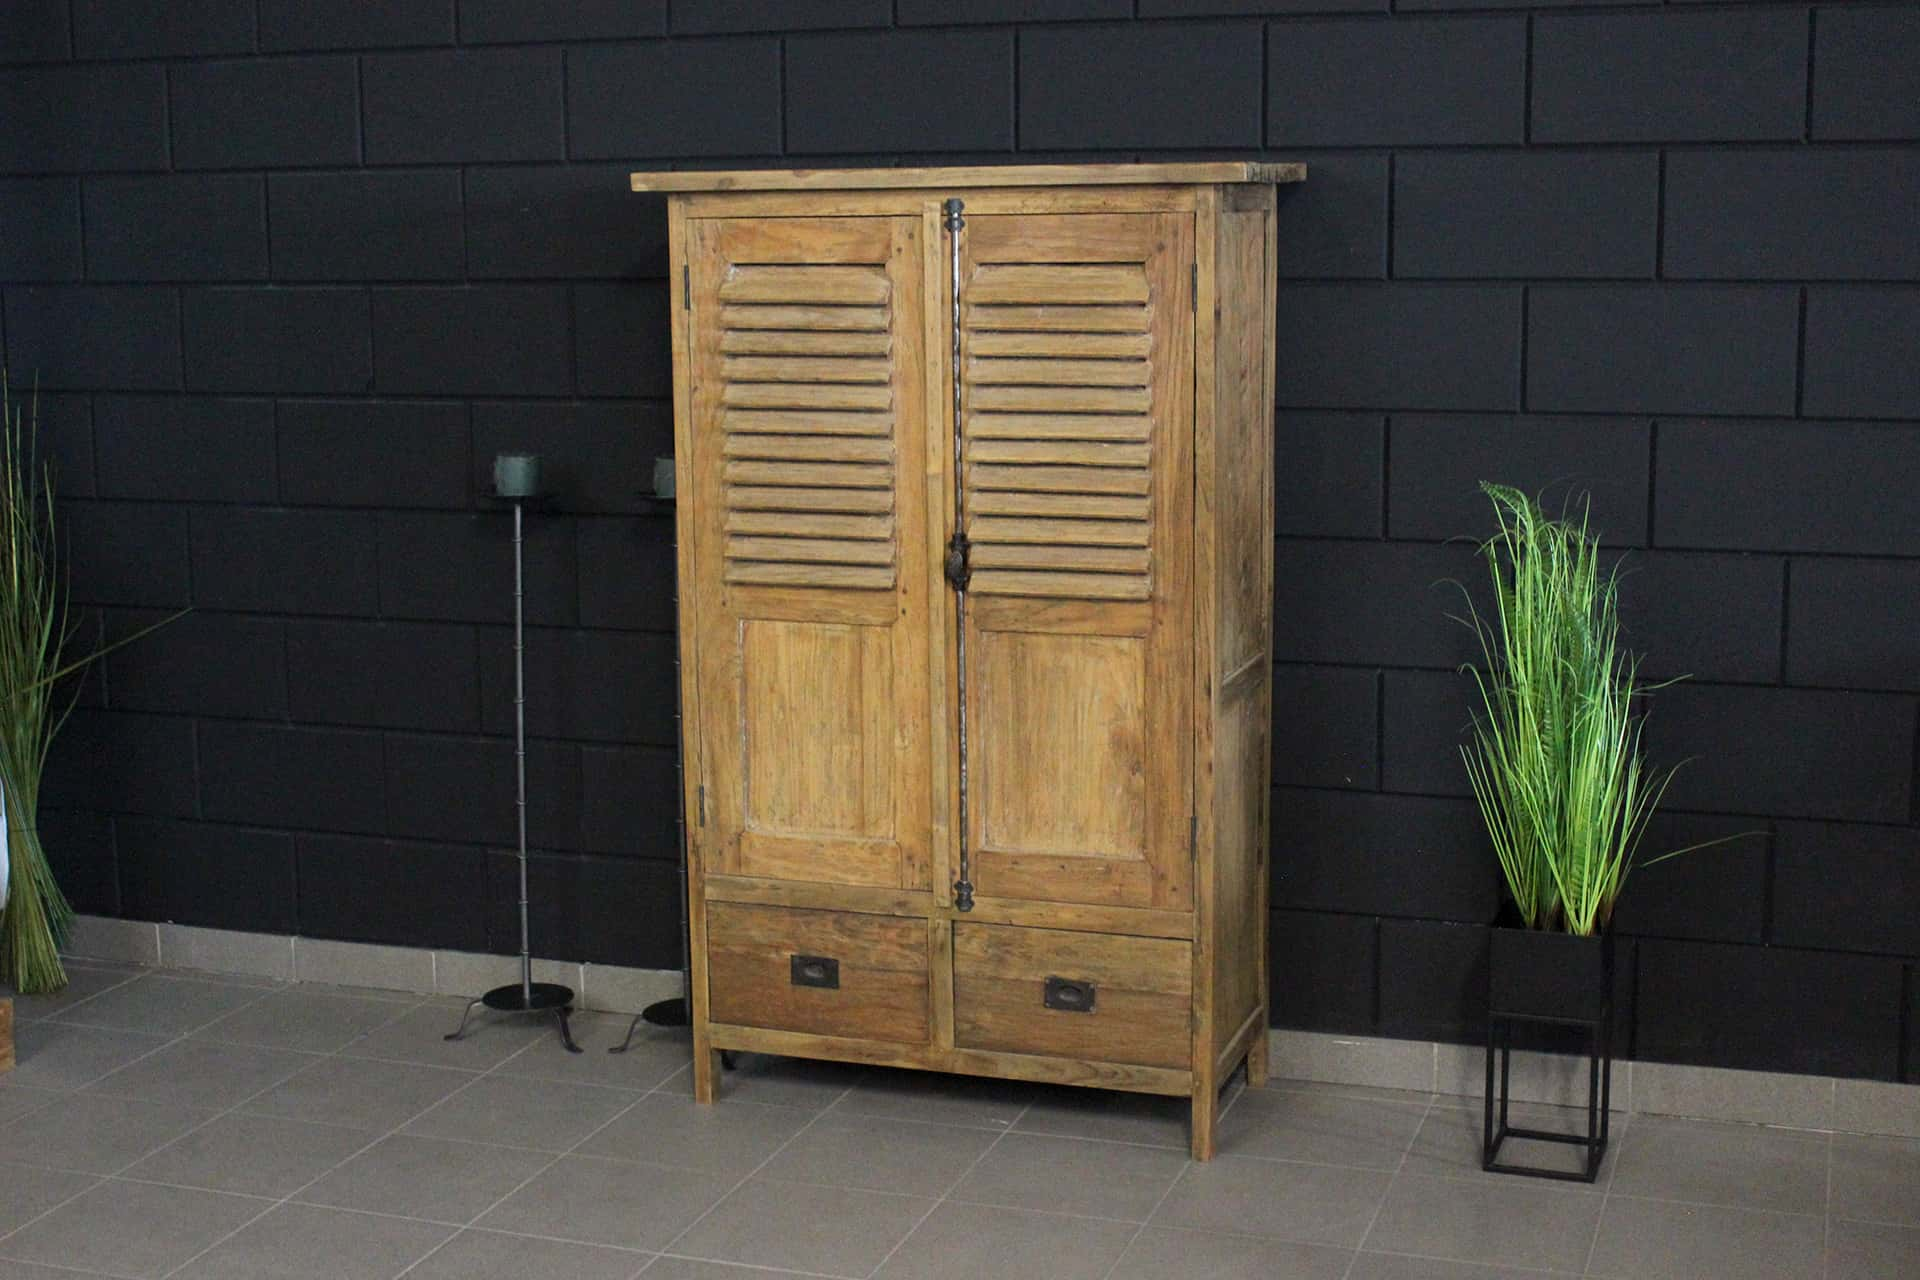 Cuci Taraf Kerai 80L Old | small teak cabinet with louvre doors in beautiful old teak. Exclusive teak wall cabinet from Indonesia - TEAK2.